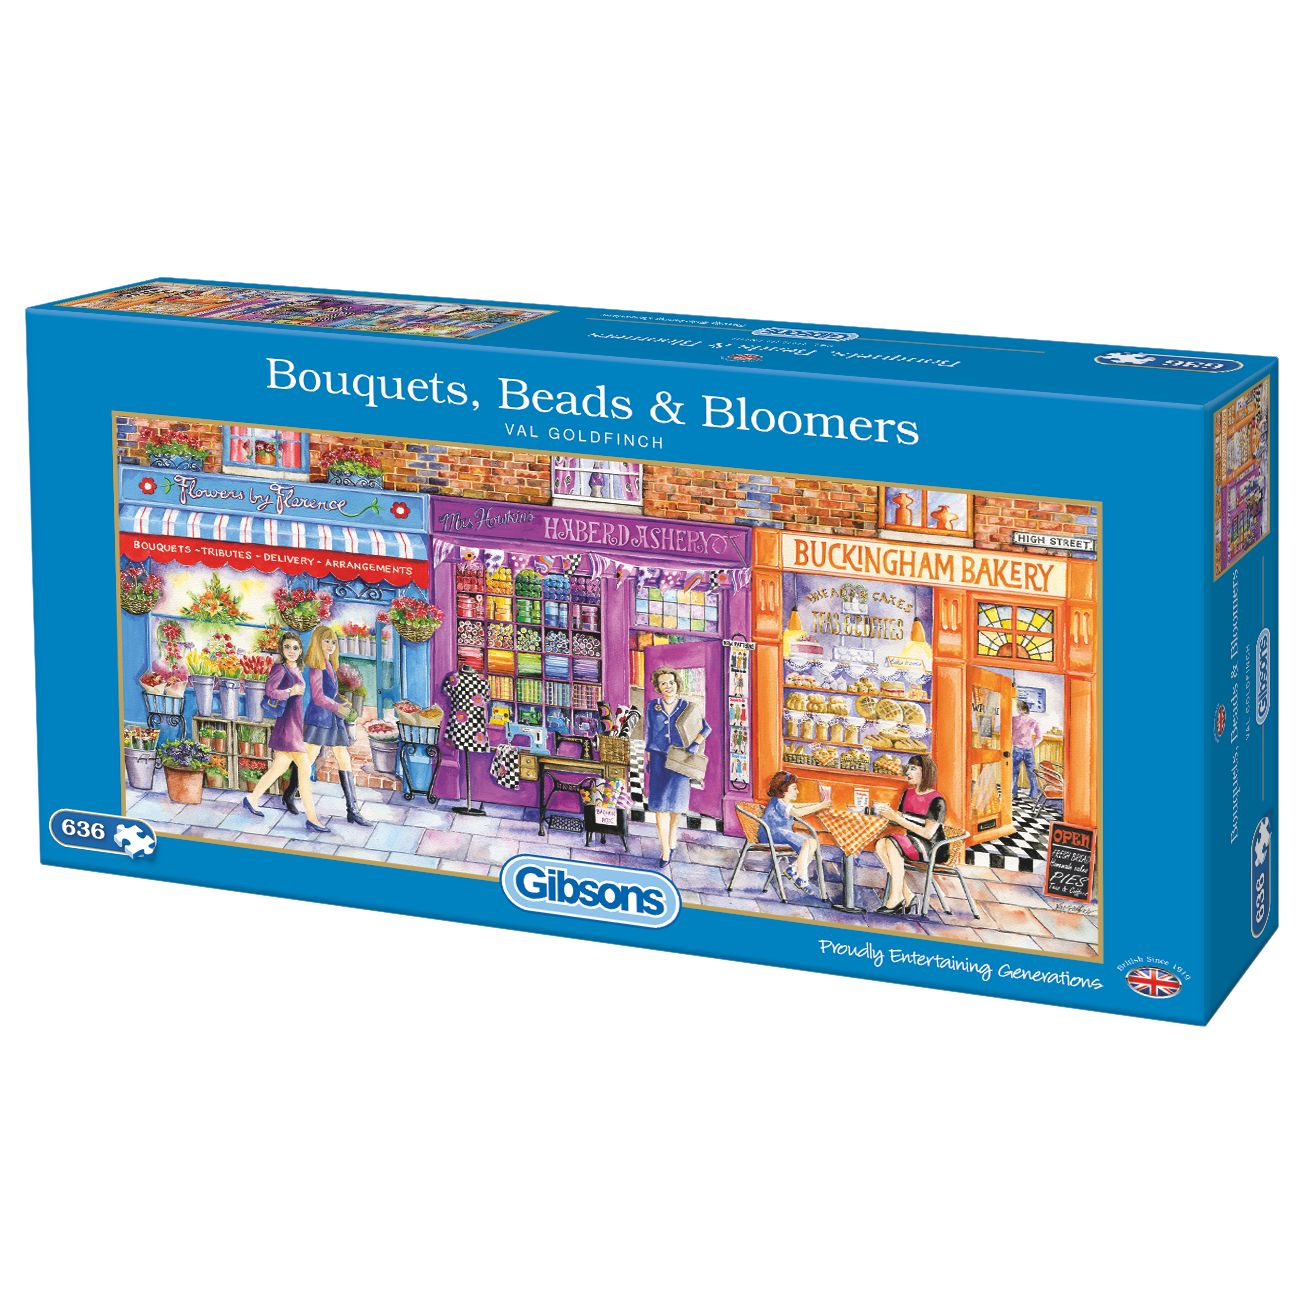 Gibsons Gibsons Bouquets, Beads & Bloomers Jigsaw Puzzle, 636 pieces